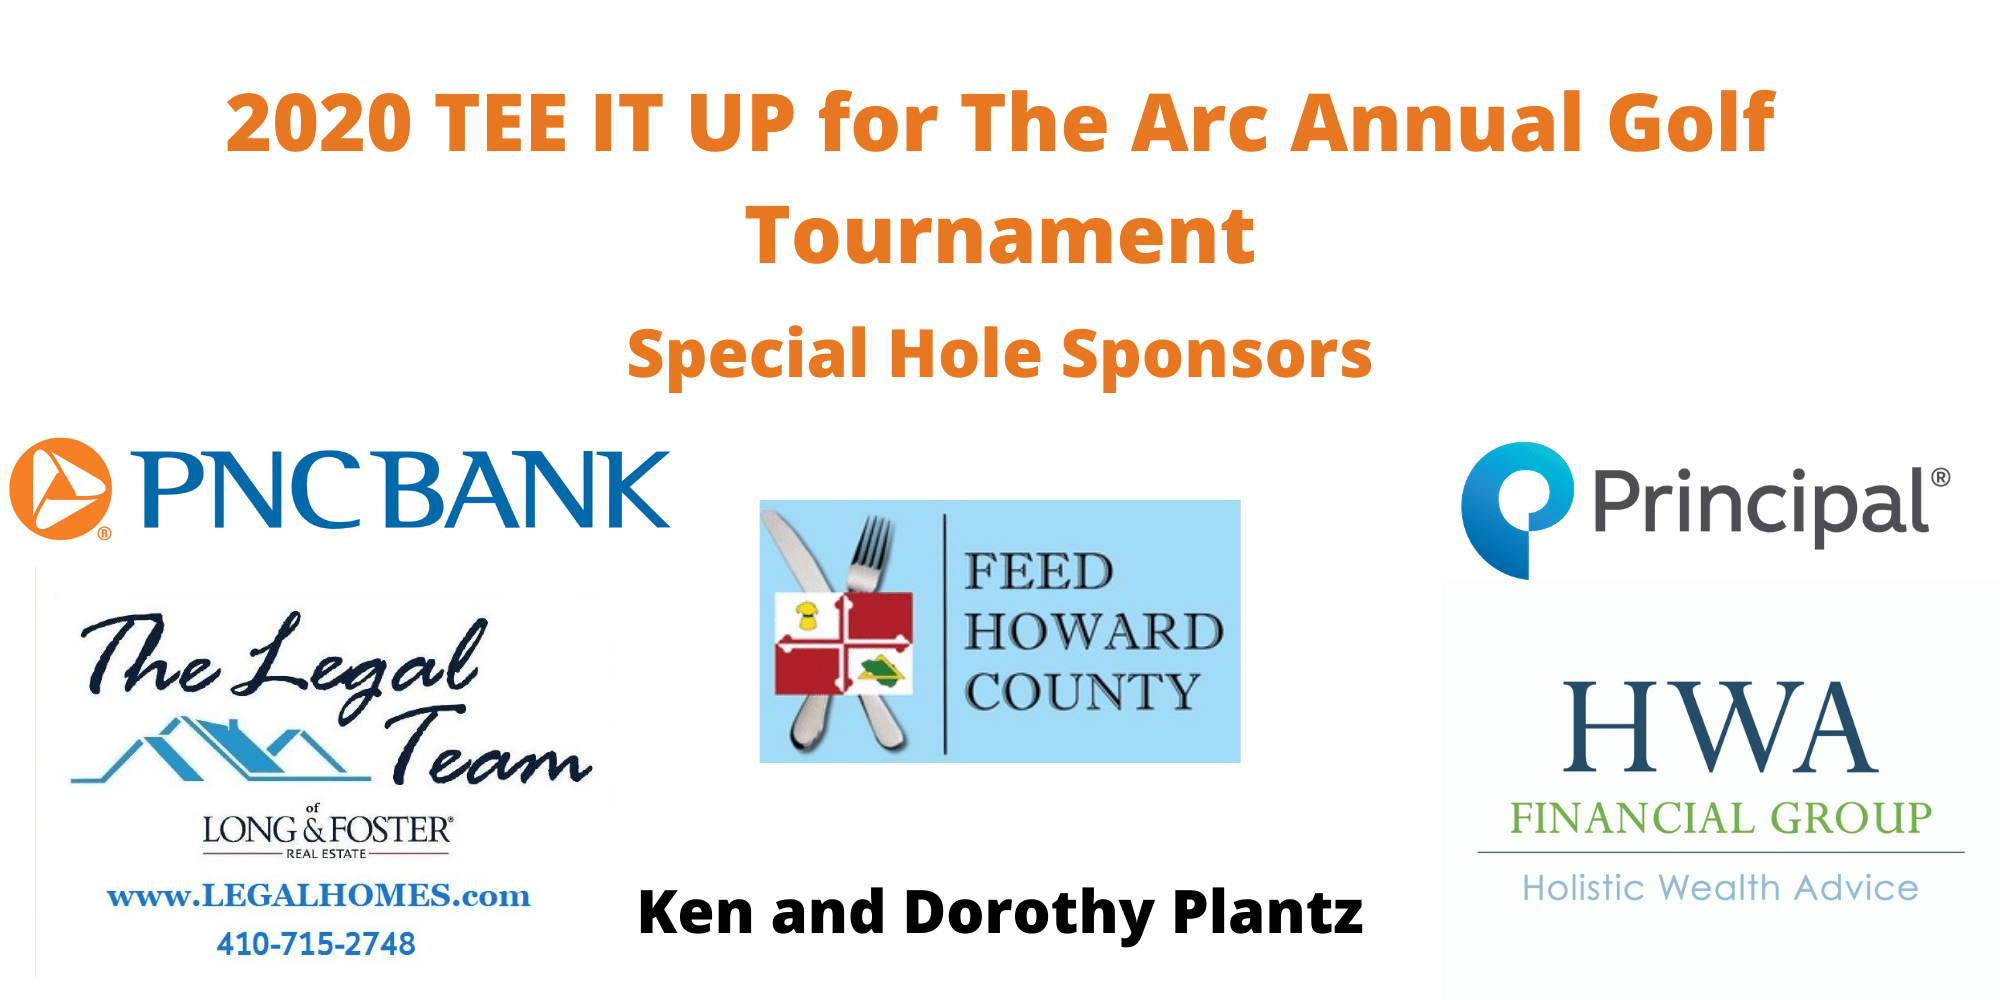 PNC Bank, The Legal Team of Long & Foster, Feed Howard County, Ken and Dorothy Plantz, Principal Financial, and the HWA Financial Group are some of the Special Hole Sponsors of TEE IT UP for The Arc Annual Golf Tournament